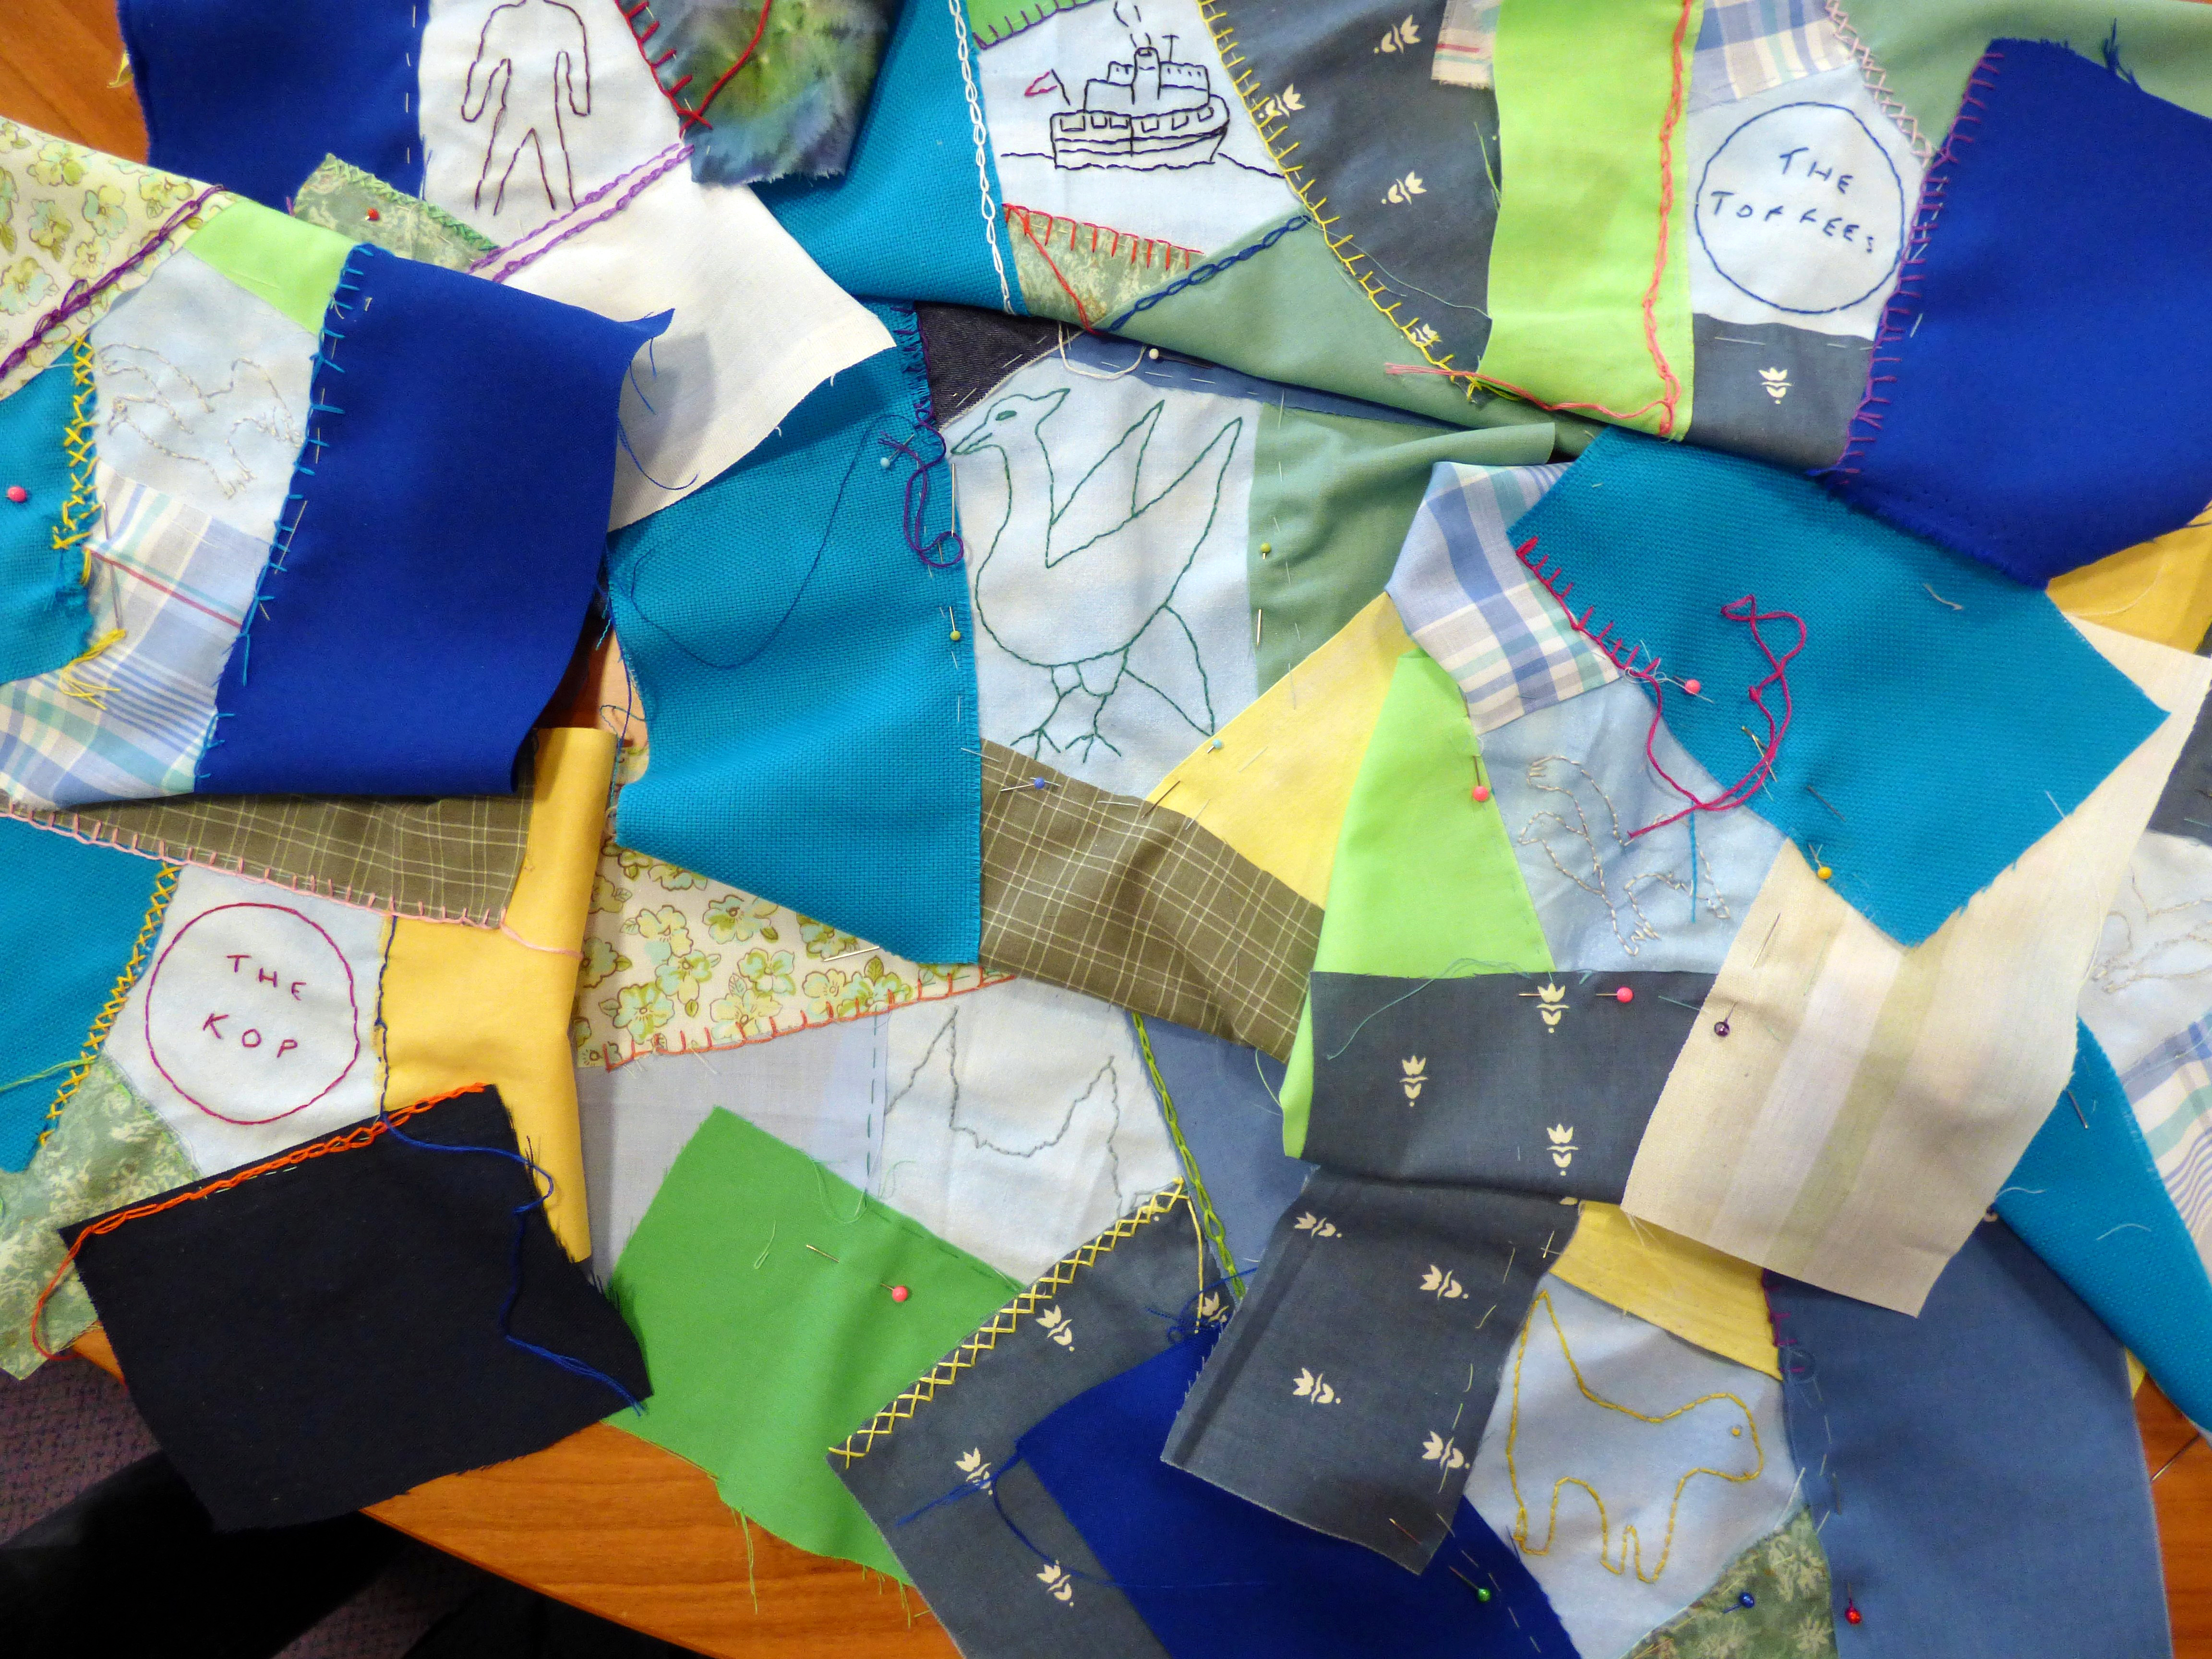 we are going to make a crazy patchwork cushion for the Lord Mayor's Parlour, Merseyside YE group October 2016